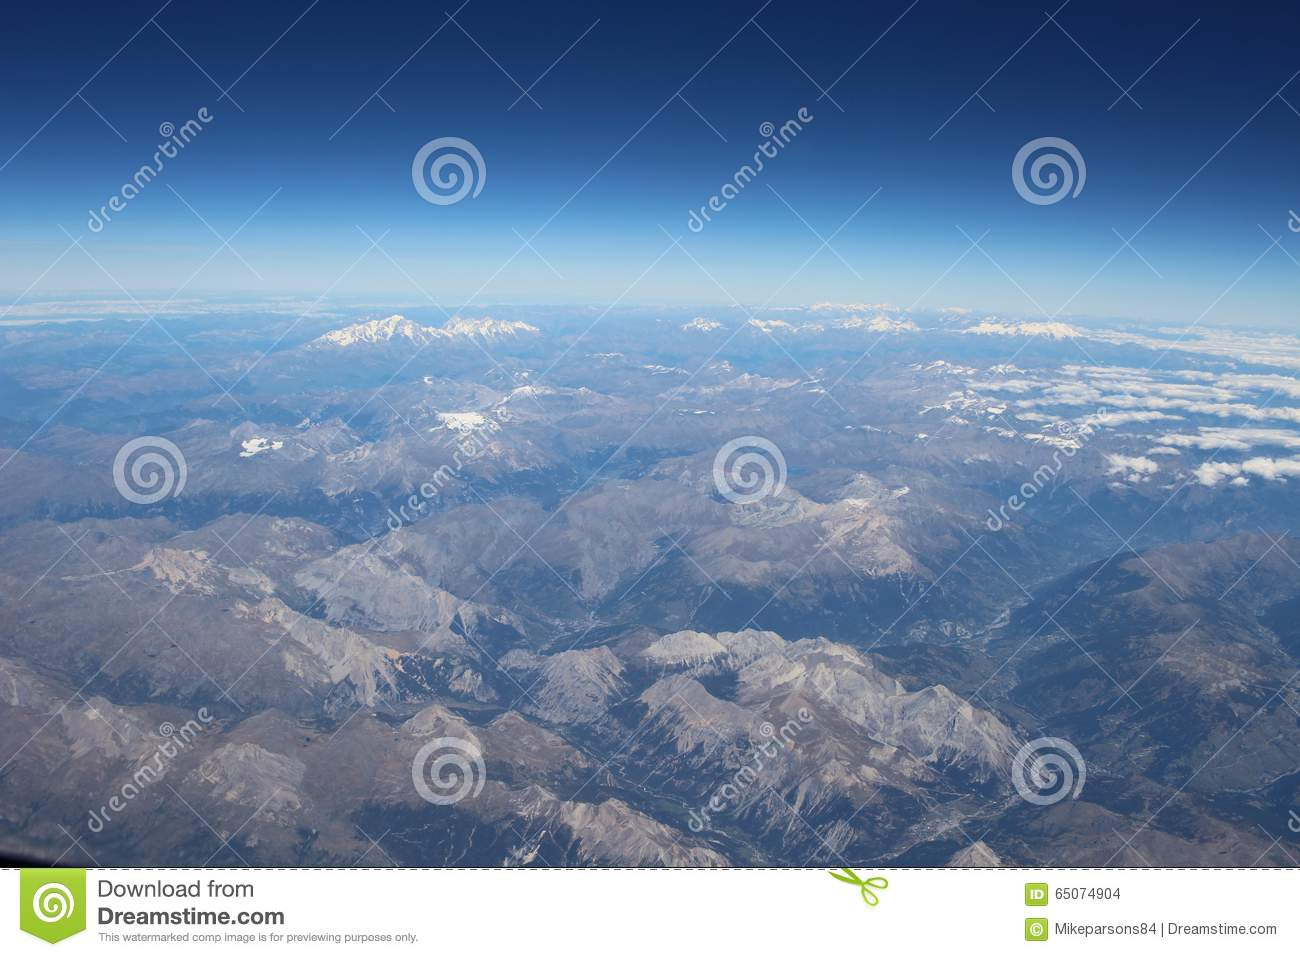 Curvature Of The Earth Over The Alps Stock Photo - Image of travel